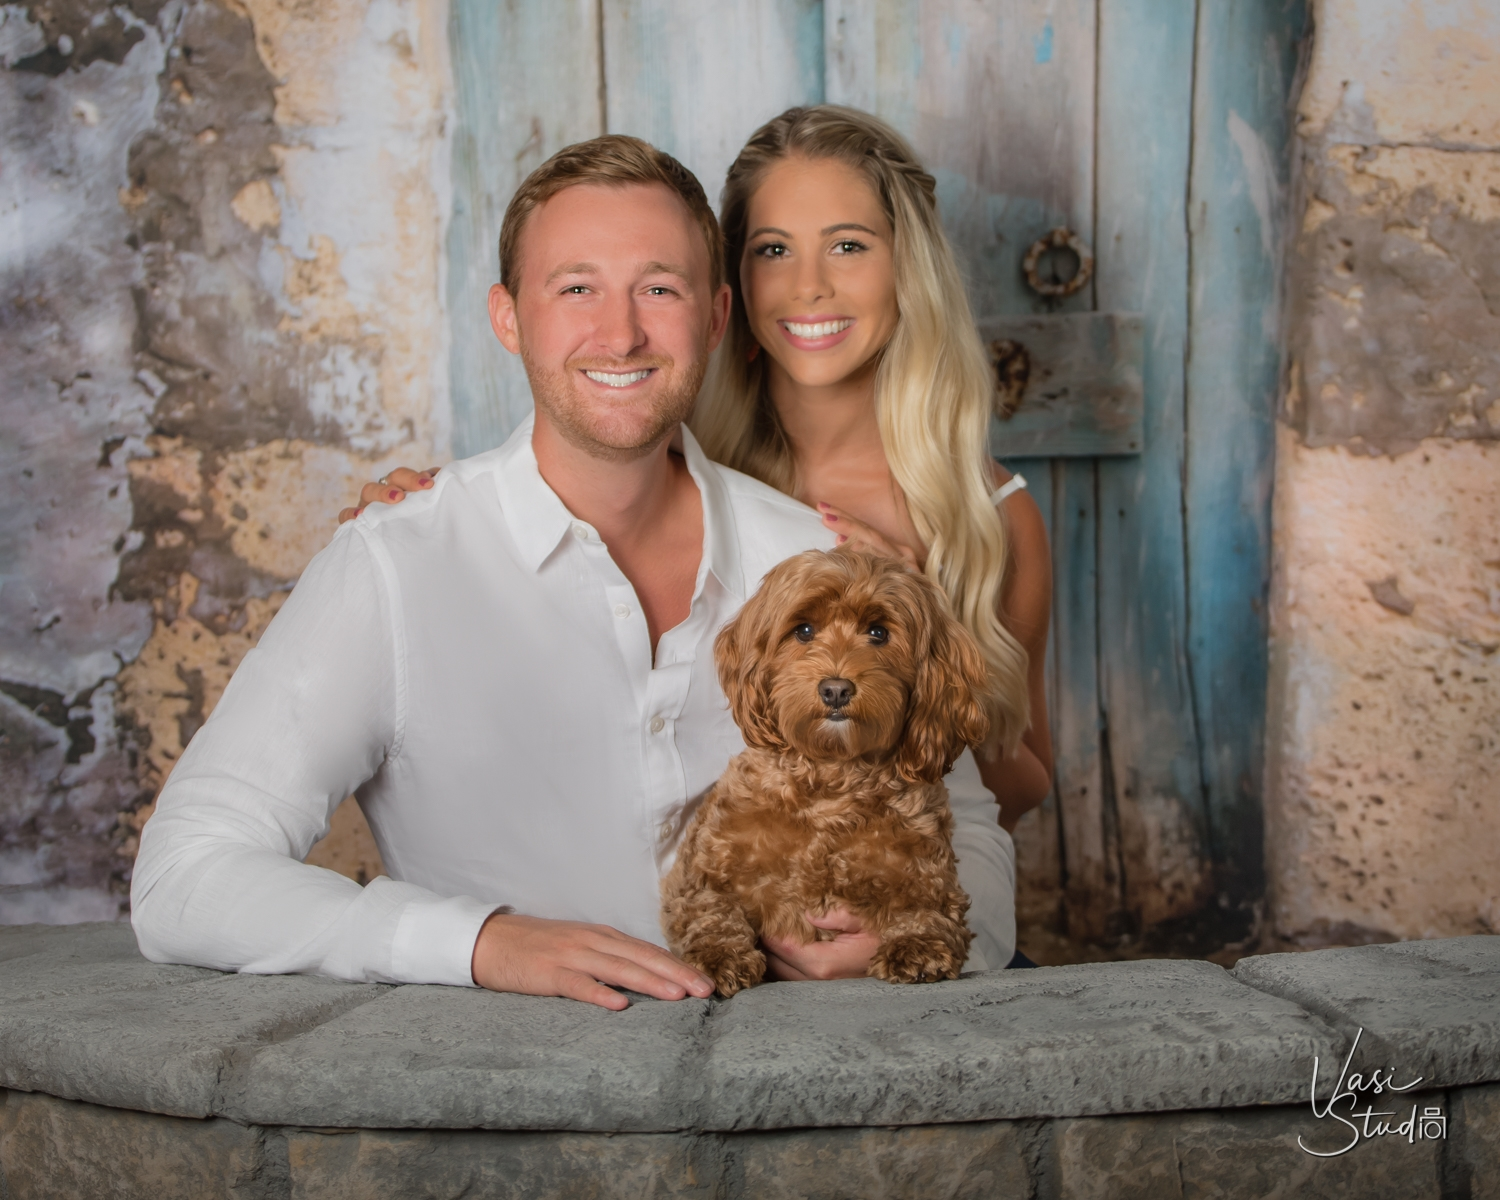 Studio session of a couple and their doggy. Call us today at 561-307-9875.